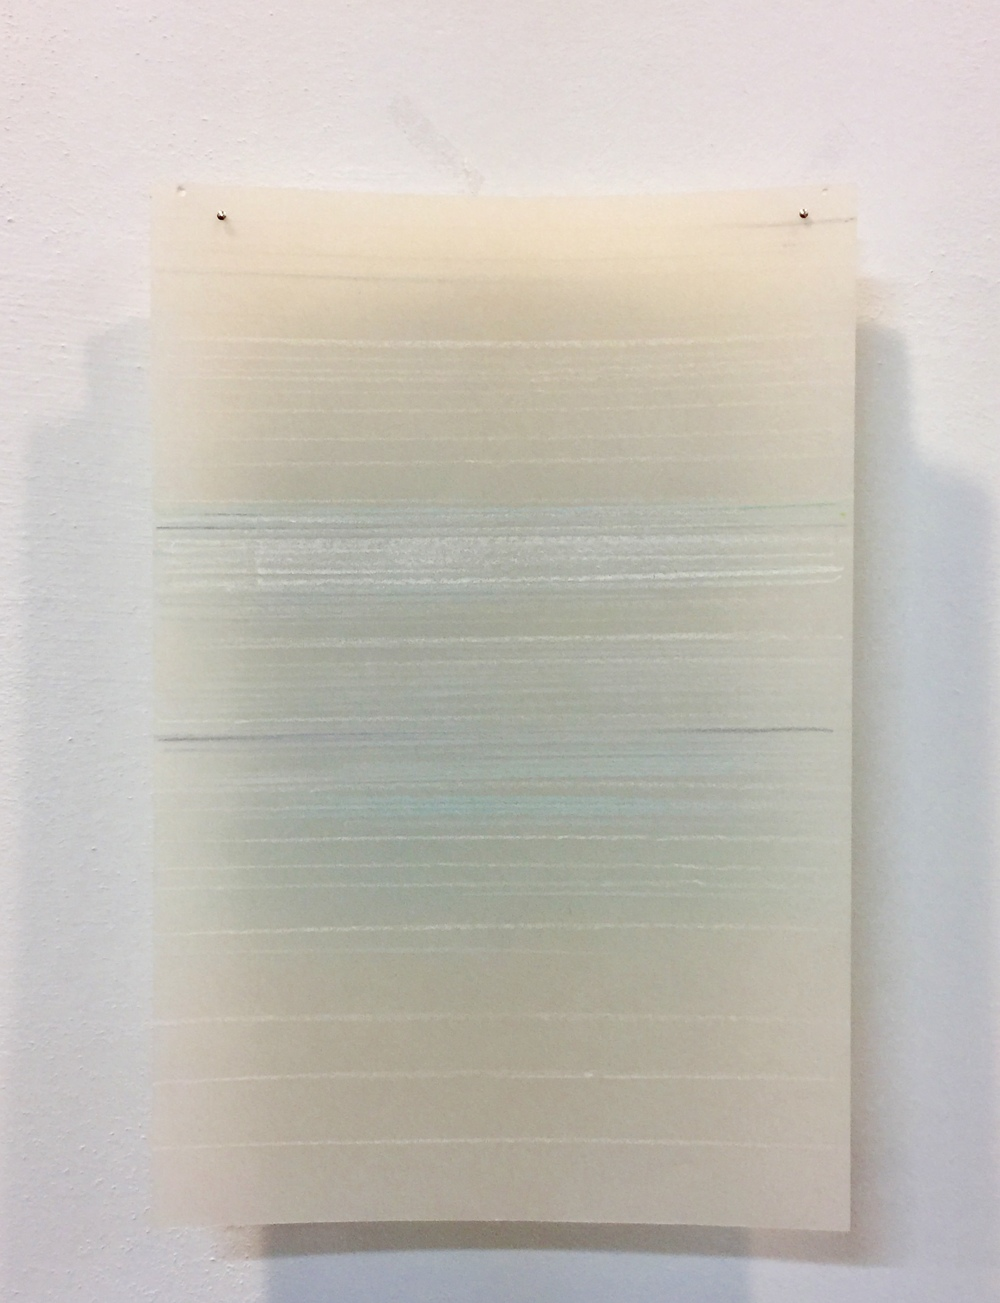 untitled, (light studies), layered line drawings color pencil on mylar each unit 8 x 4 in 2006